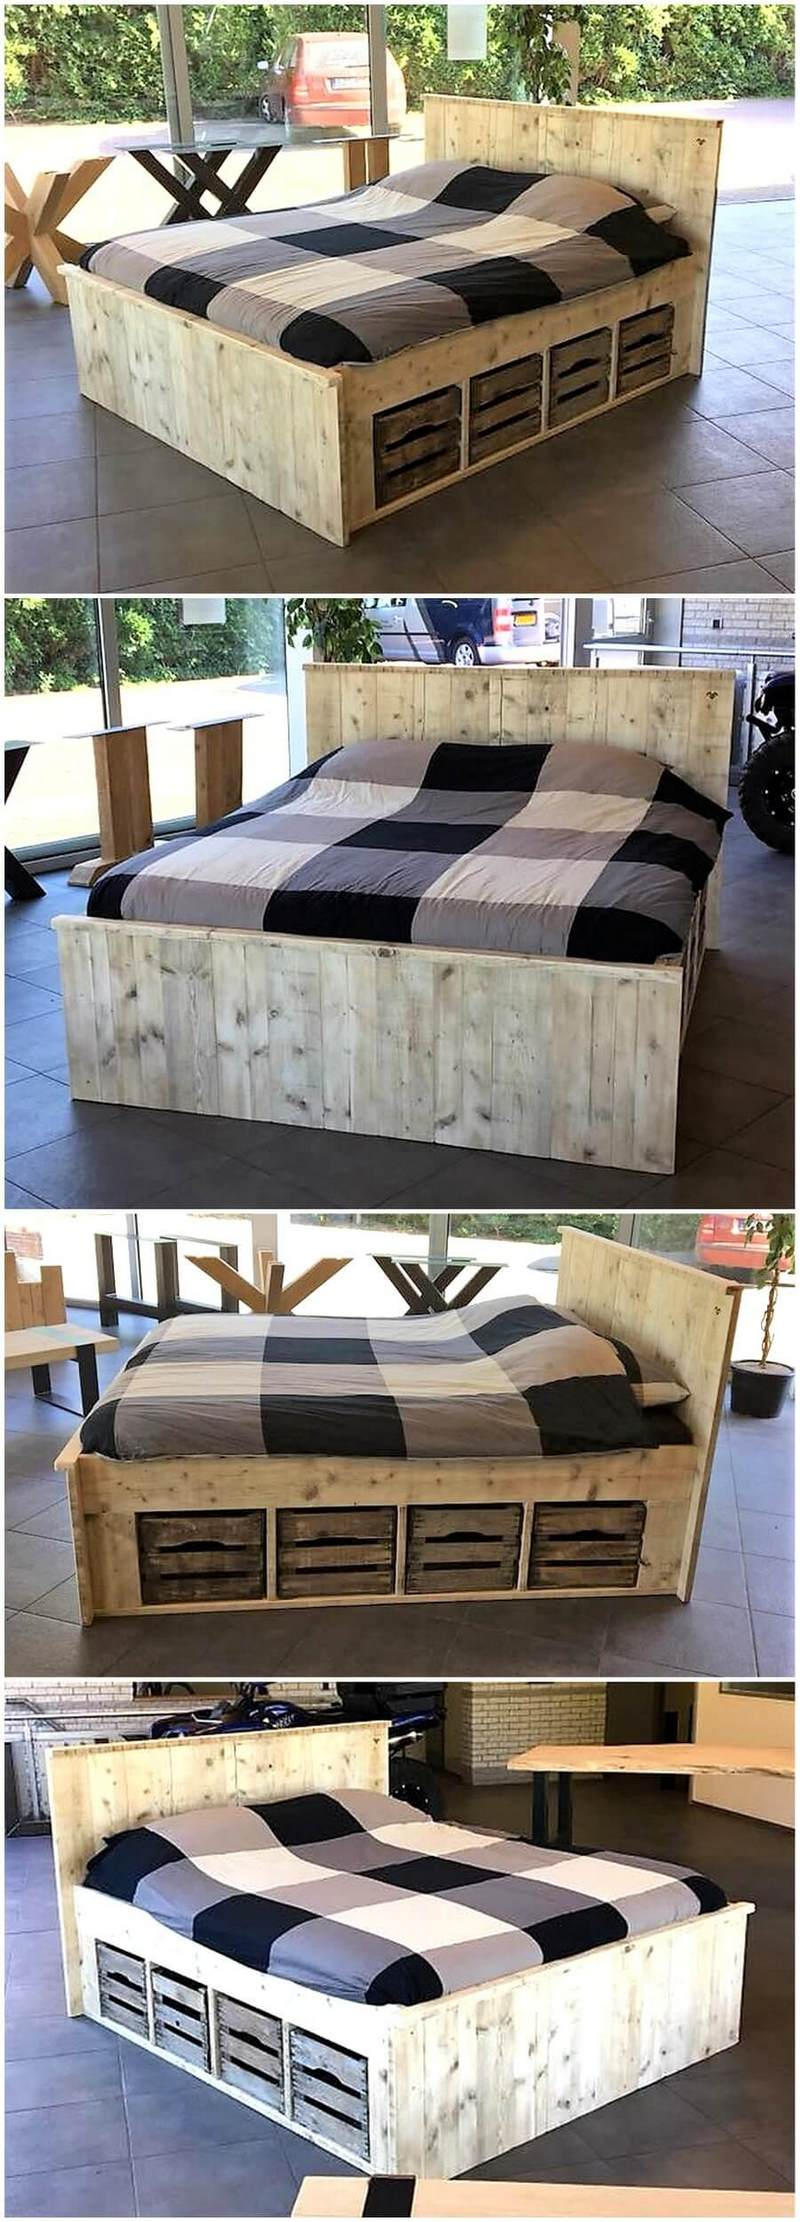 giant pallet wooden bed